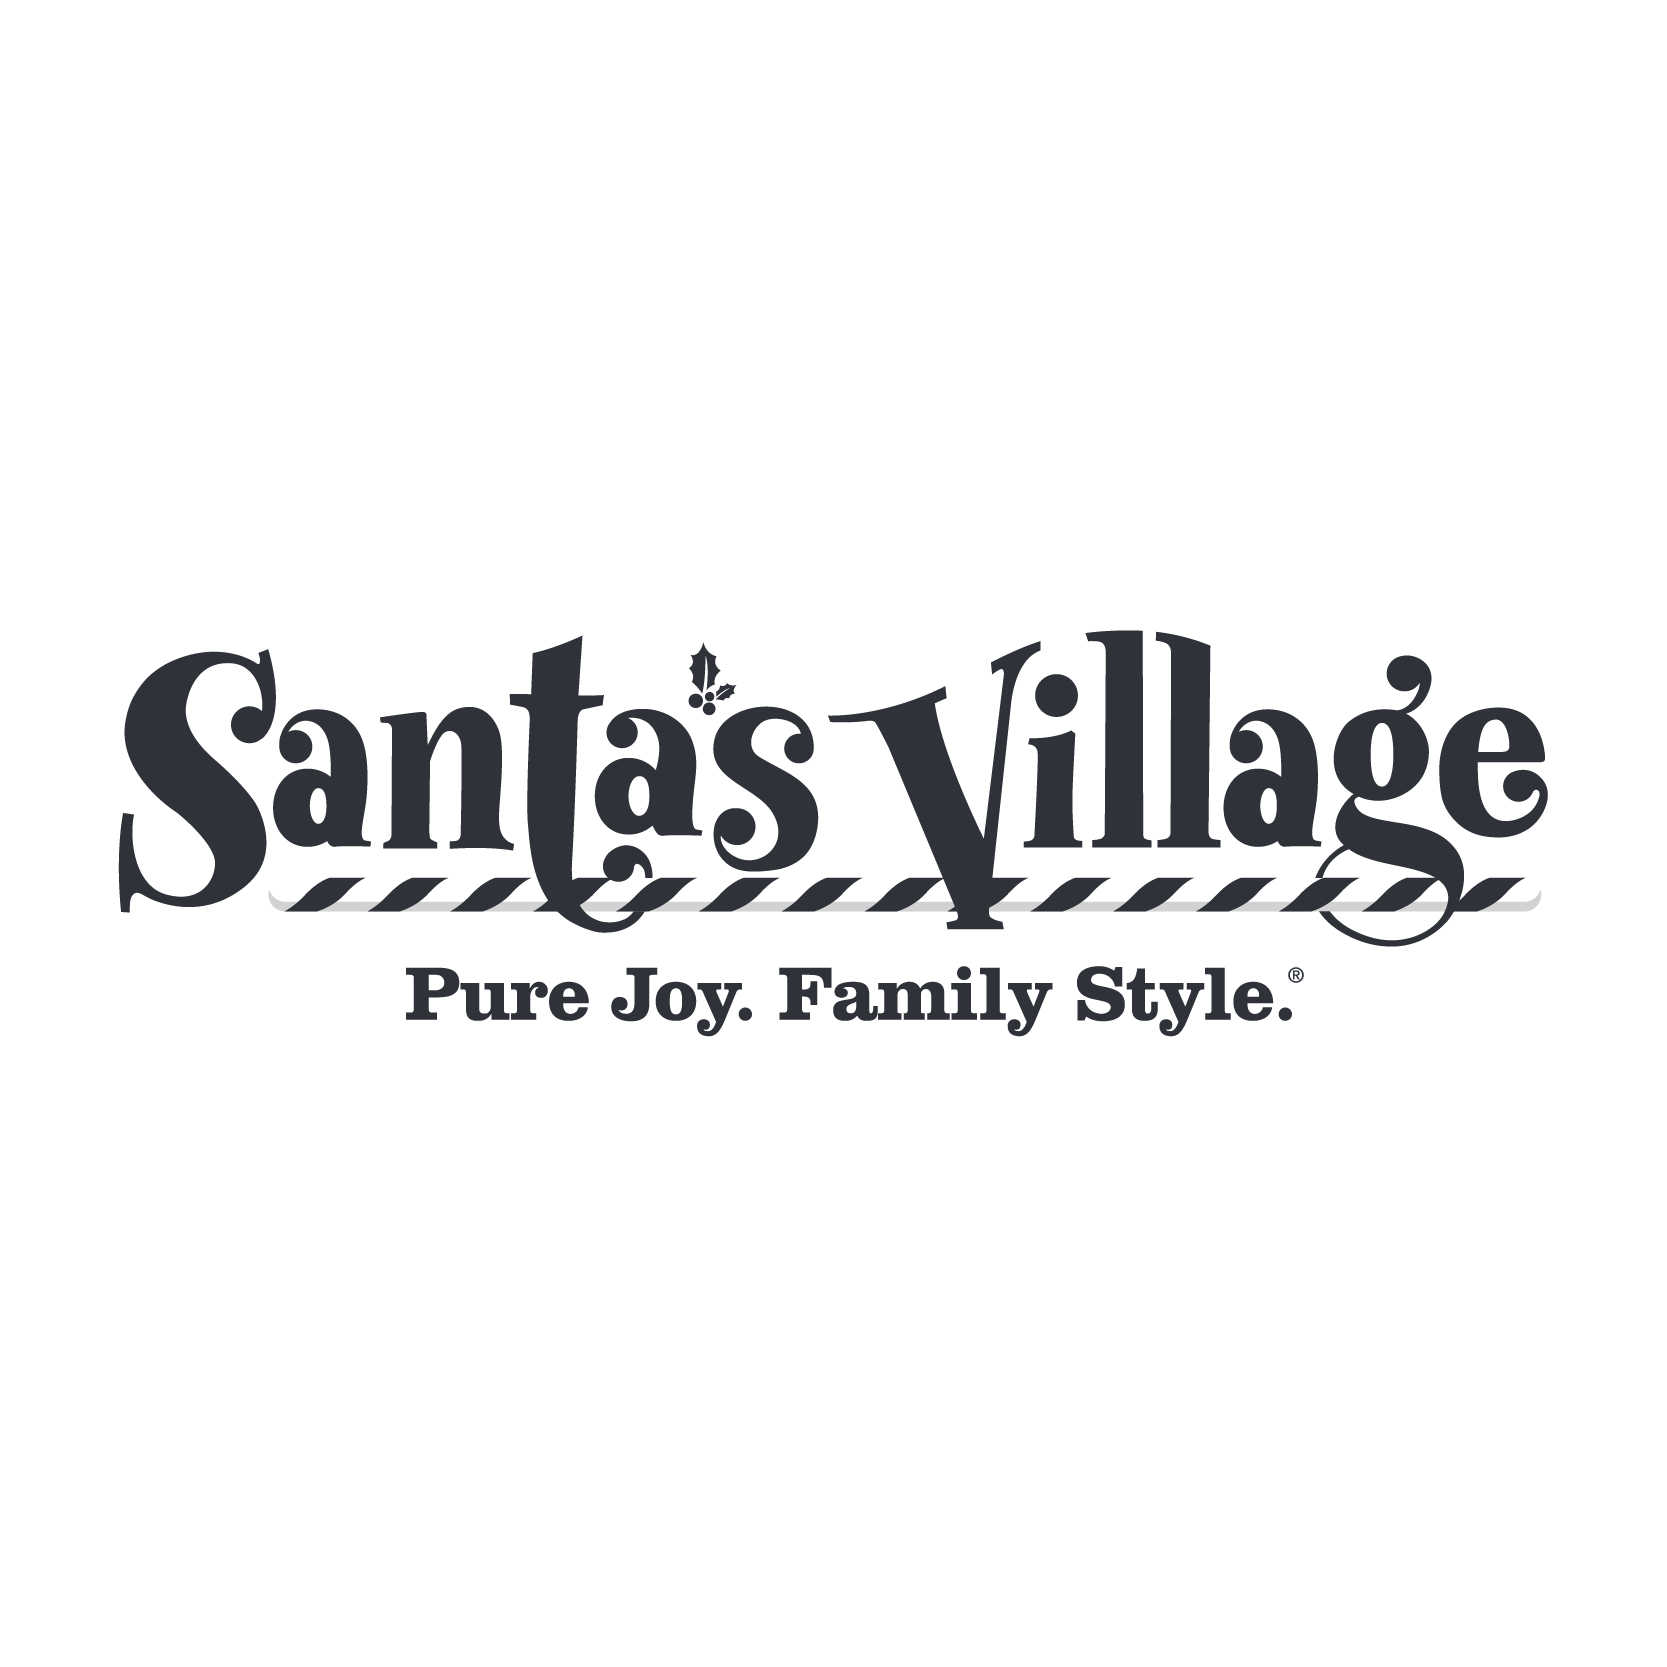 _all_logos_img-santas-village-logo.png